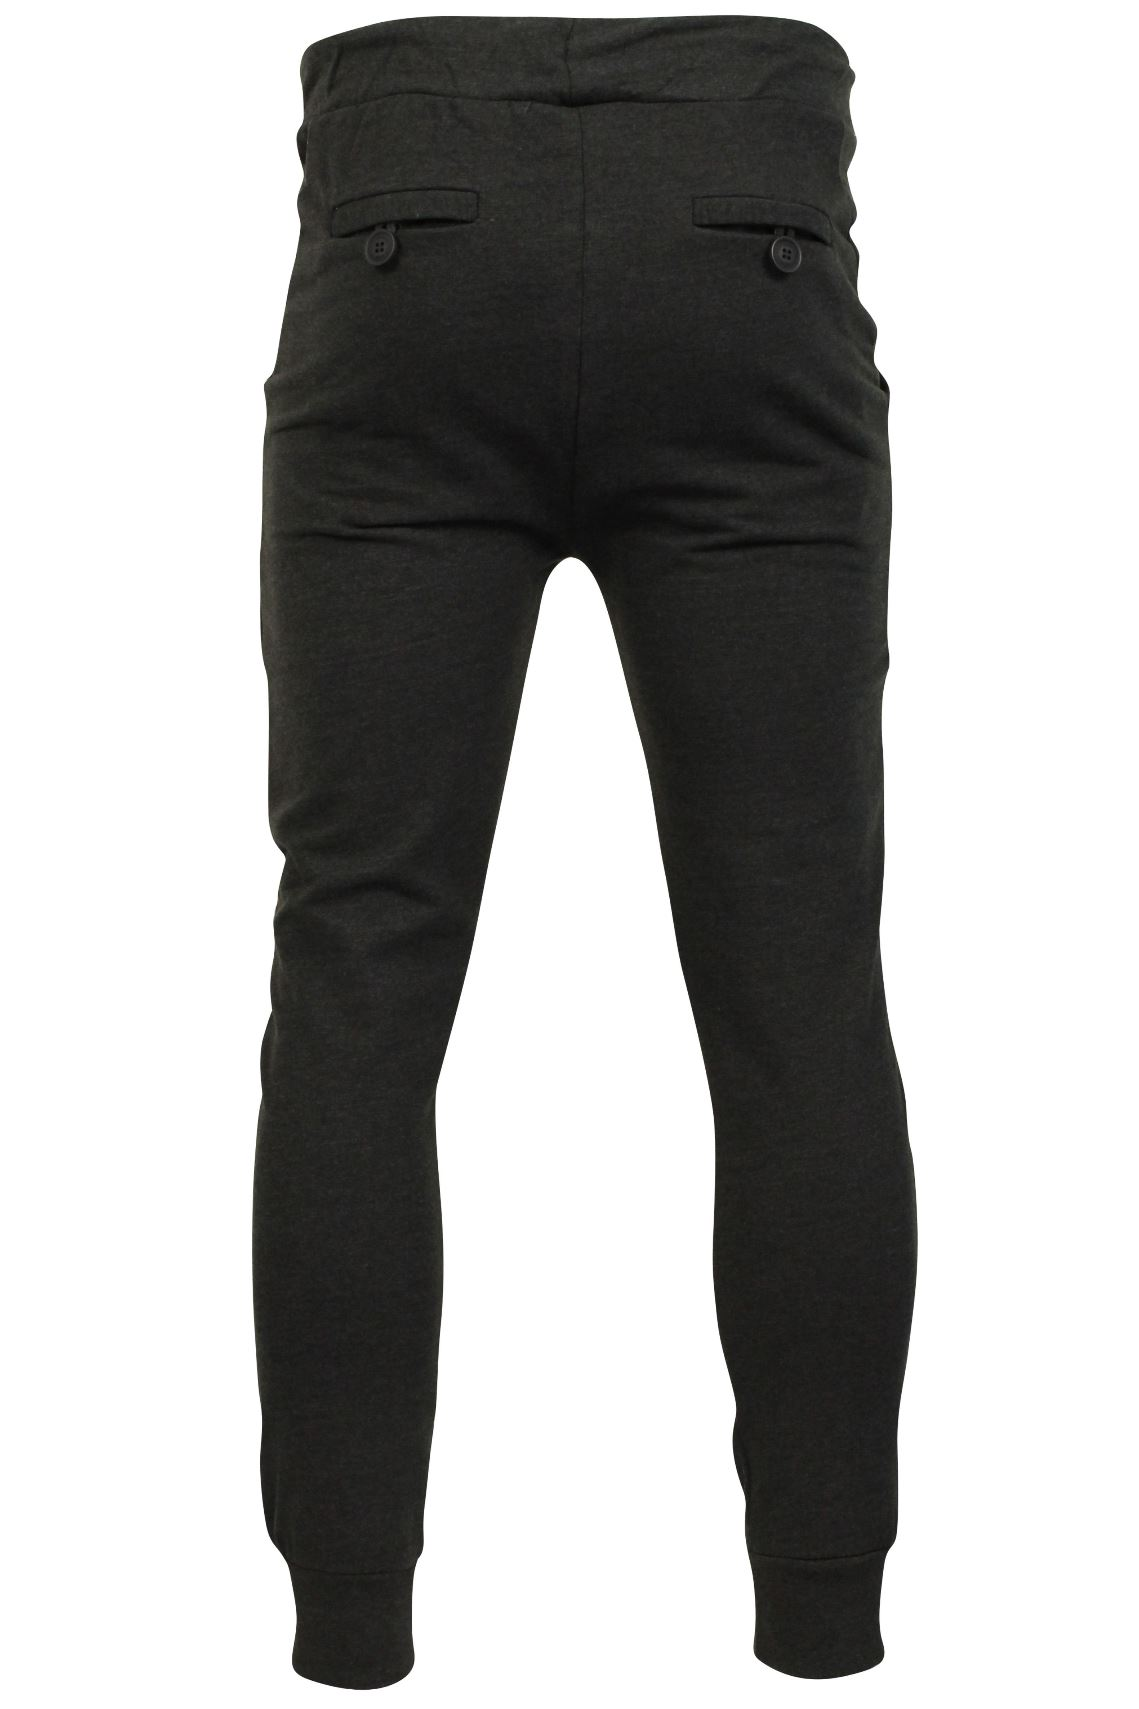 Mens-Skinny-Joggers-by-Crosshatch-039-Sidwell-039 thumbnail 8